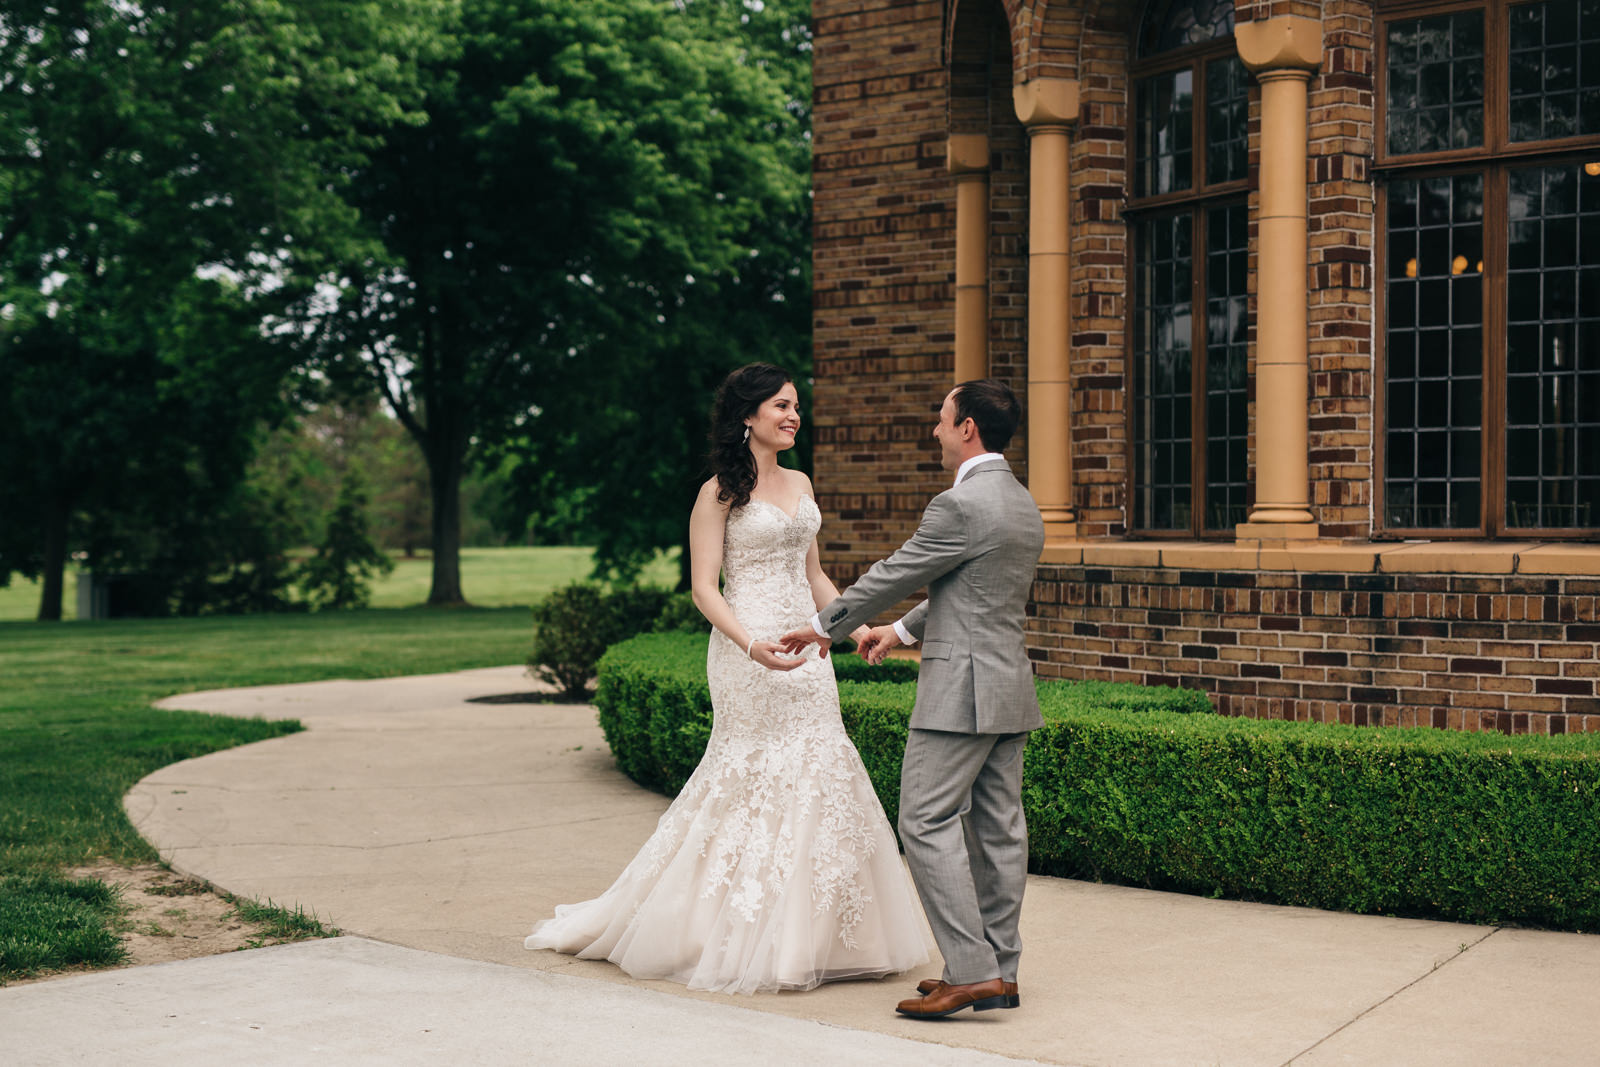 Bride and groom's first look at Nazareth Hall wedding.